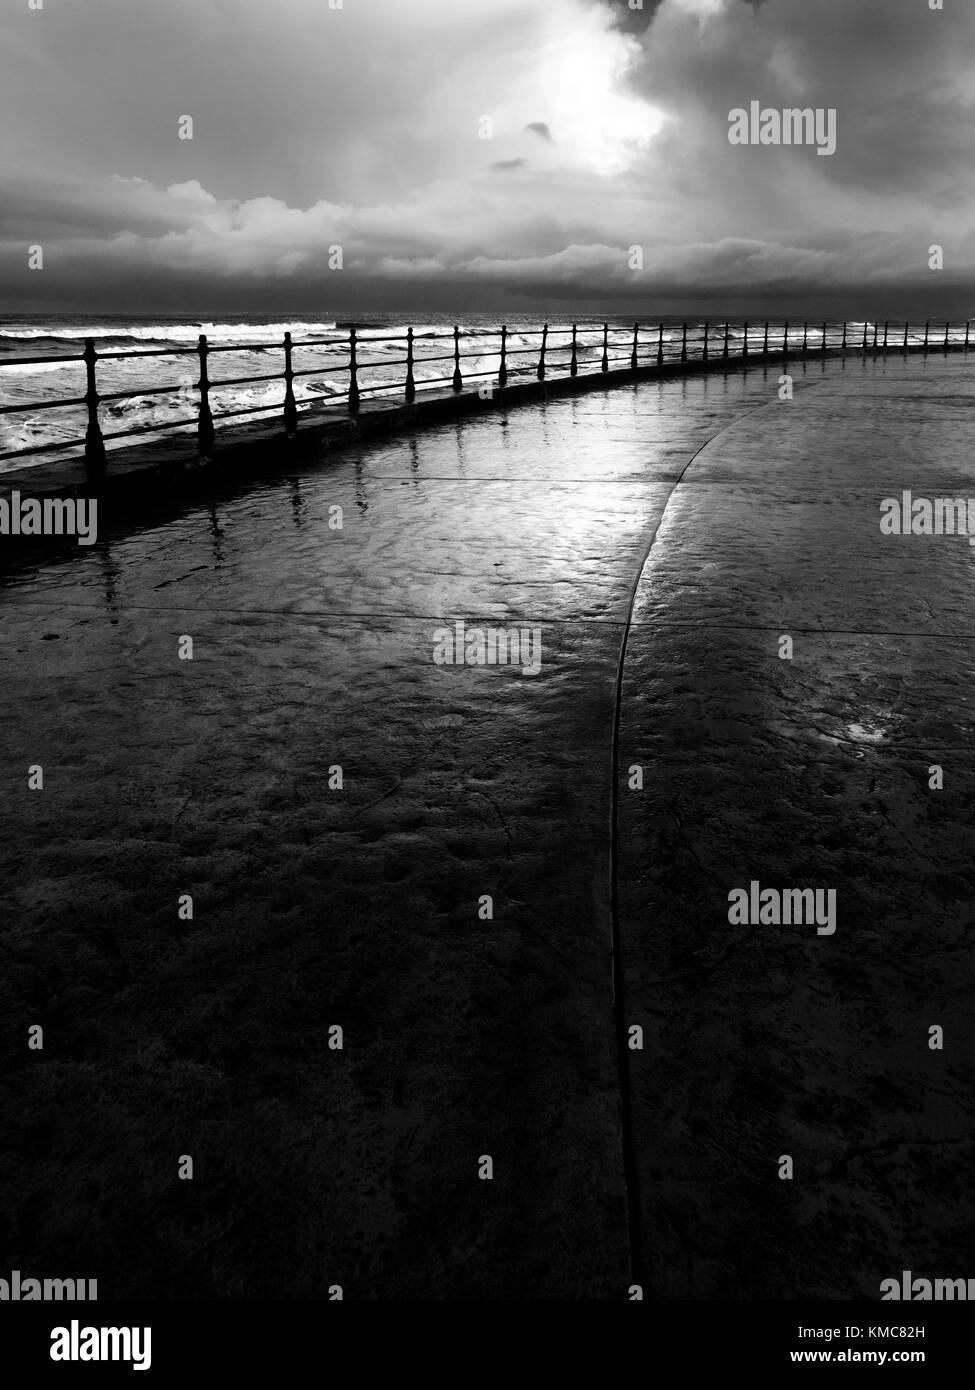 Iron Railings on the Sea Wall and Reflections after Rain in Souith Bay Scarborough North Yorkshire England - Stock Image